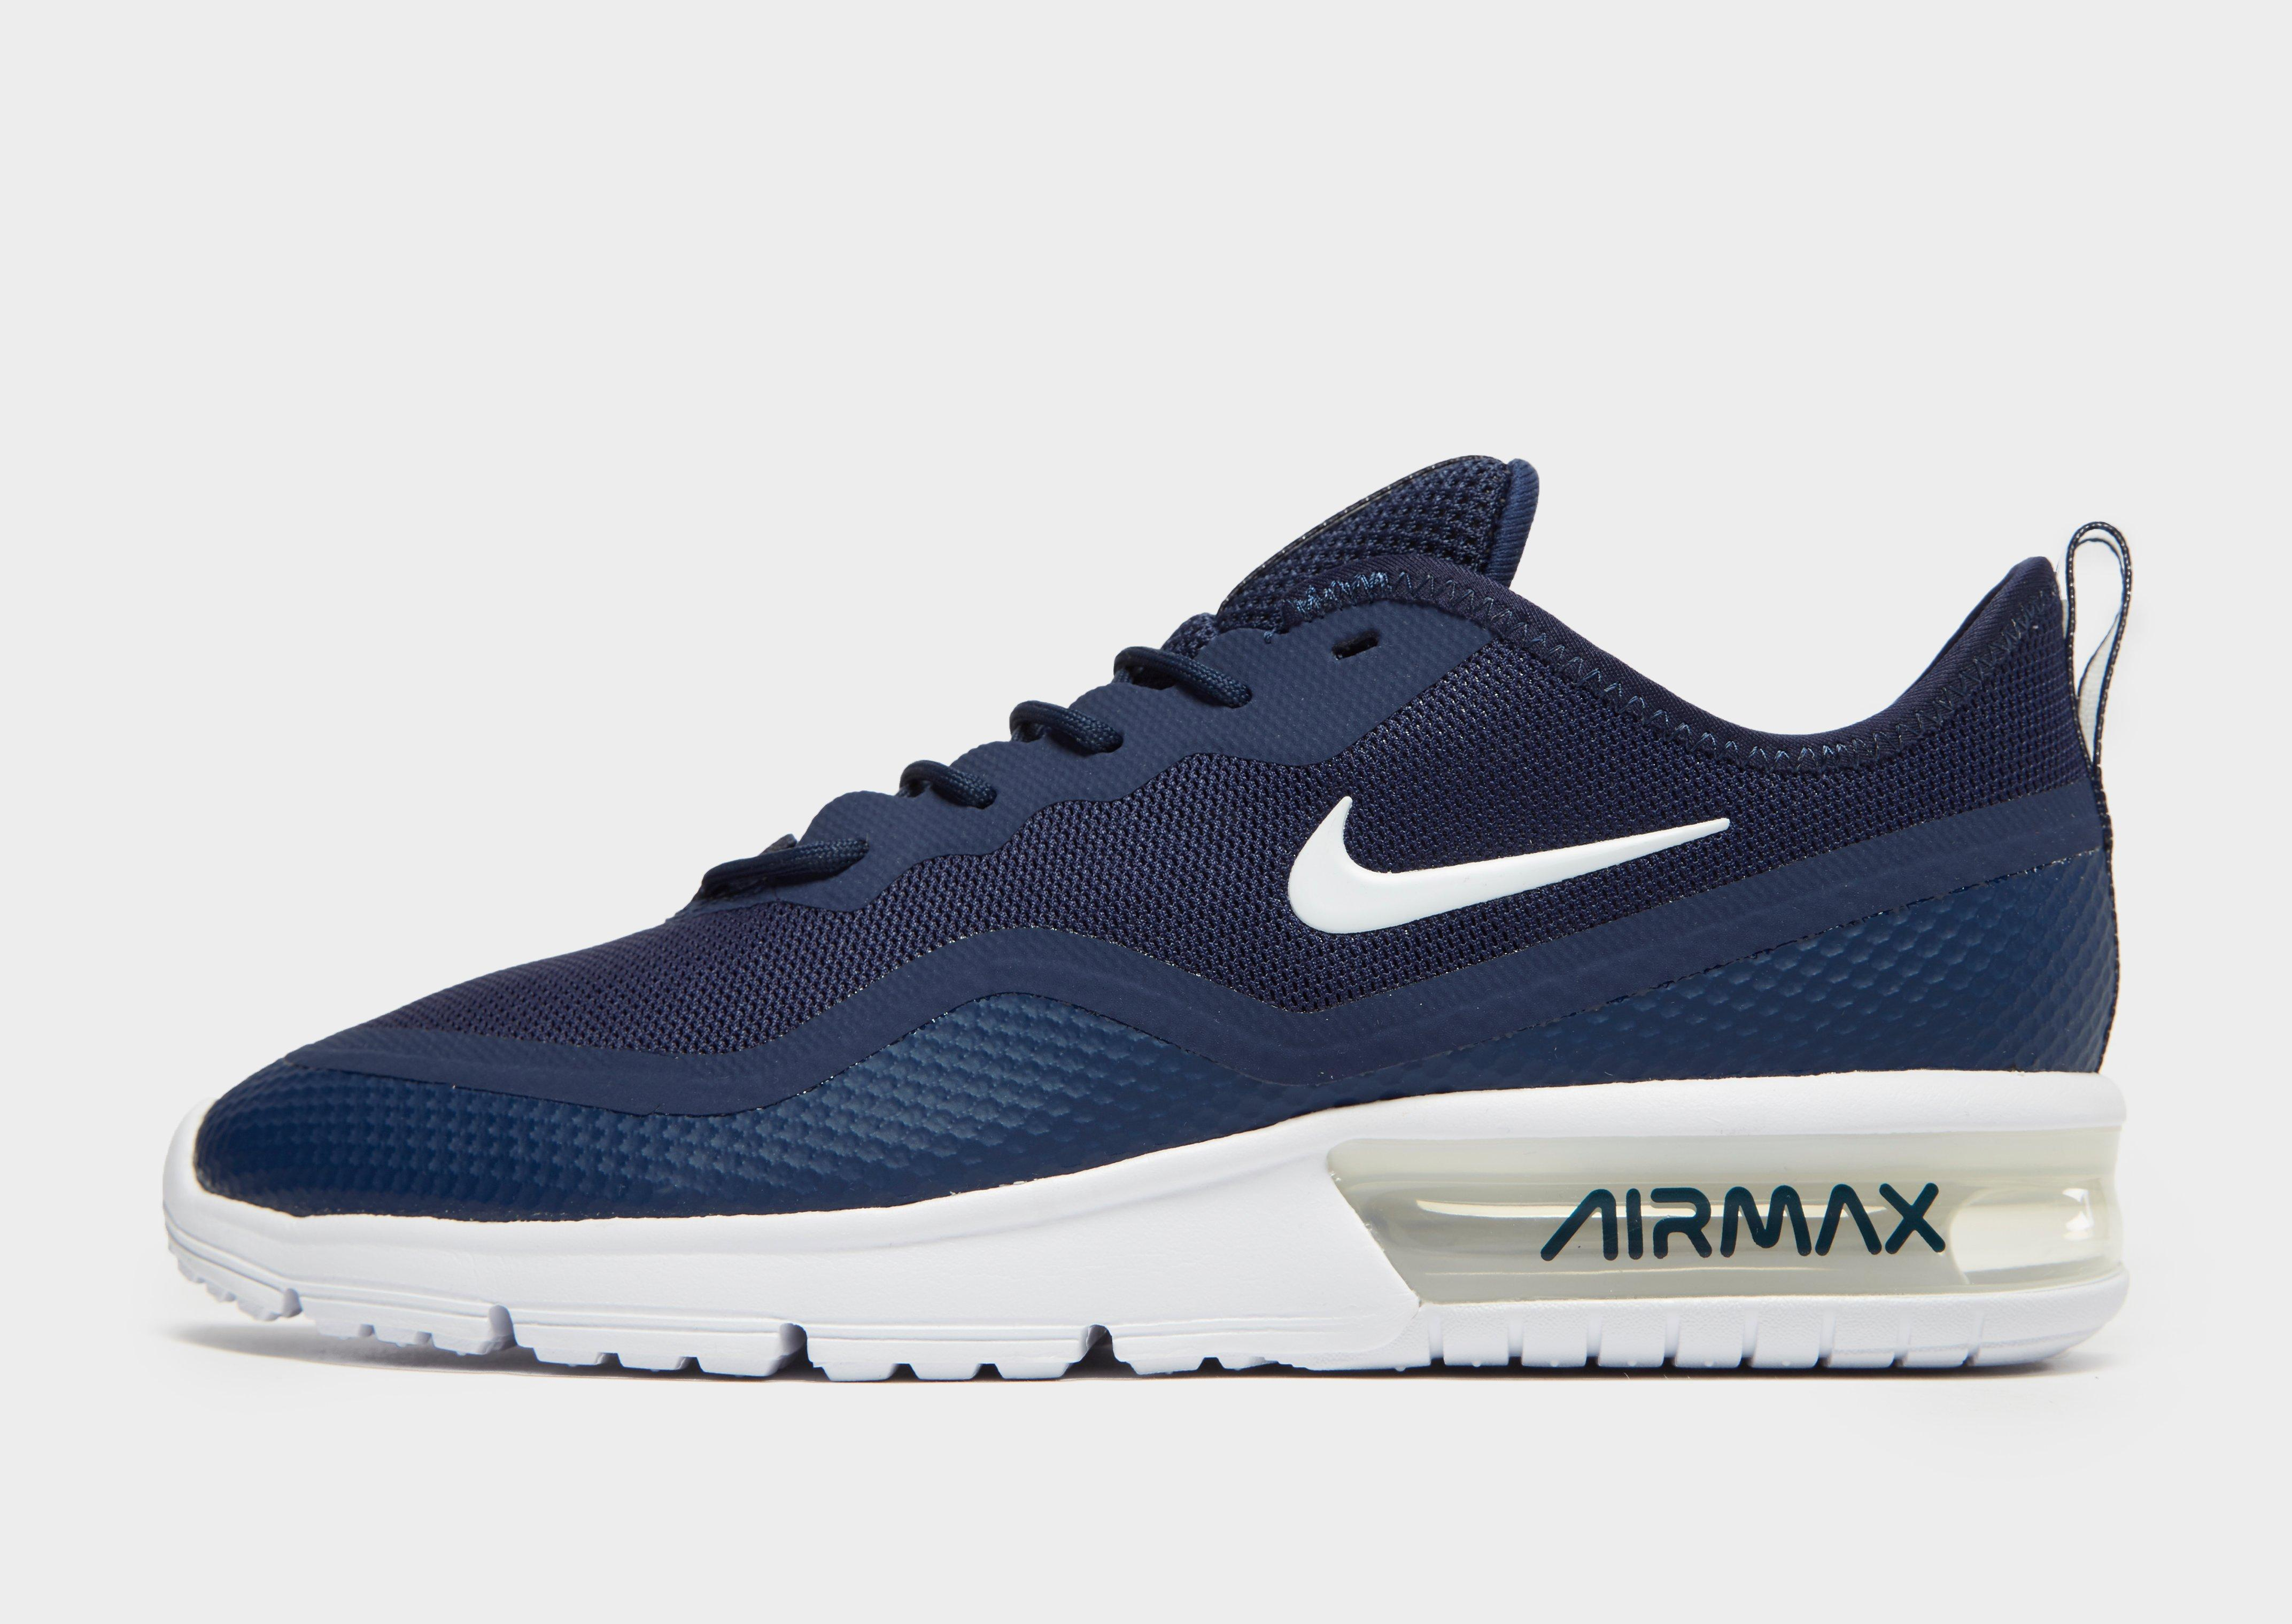 Air Max Running Nike Air Max Sequent 4 5 Jd Sports